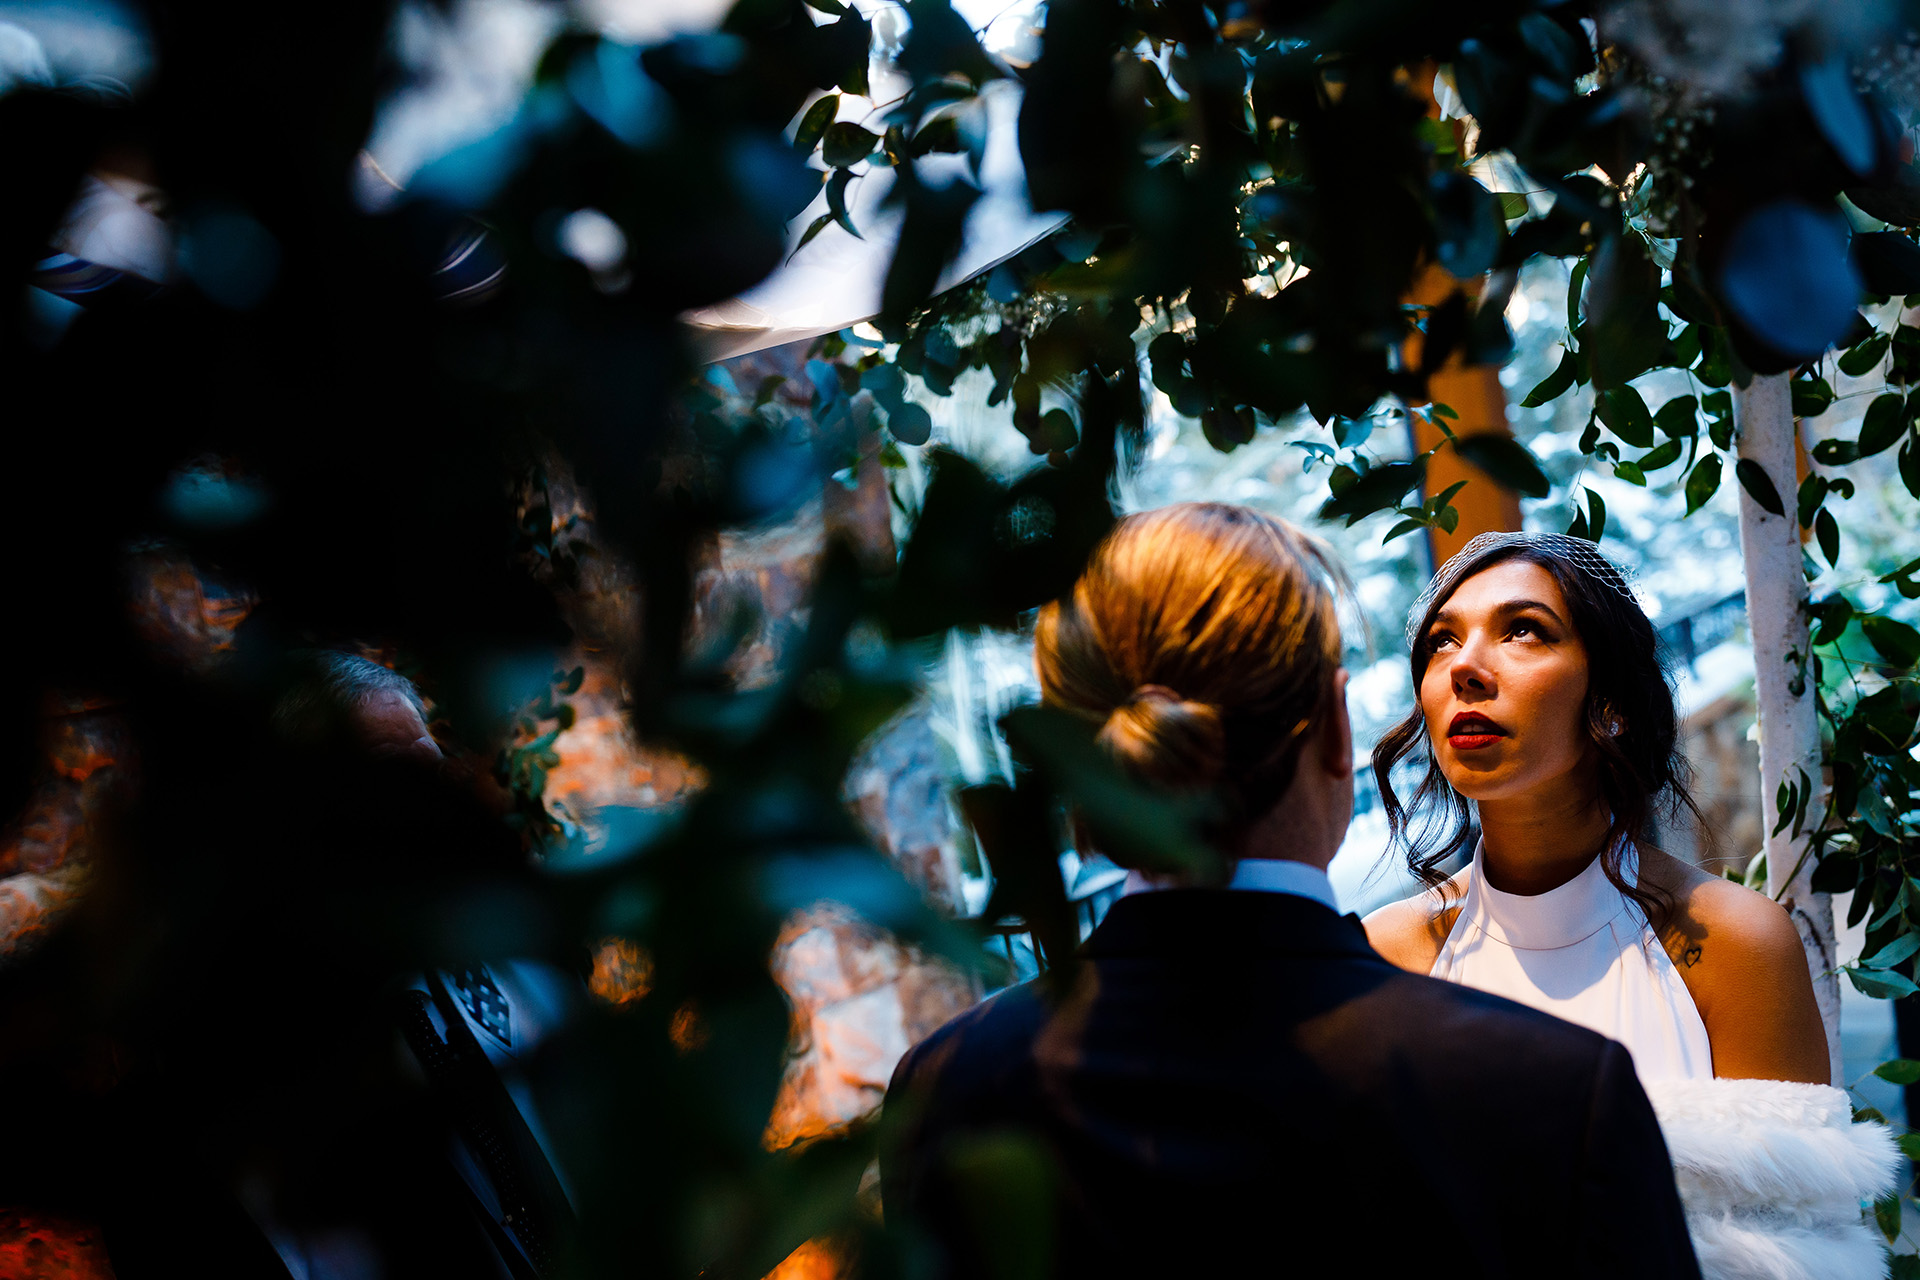 Colorado Mountain Wedding Photographers of Vail | the vines of the pergola make them appear as if they are in an enchanted forest